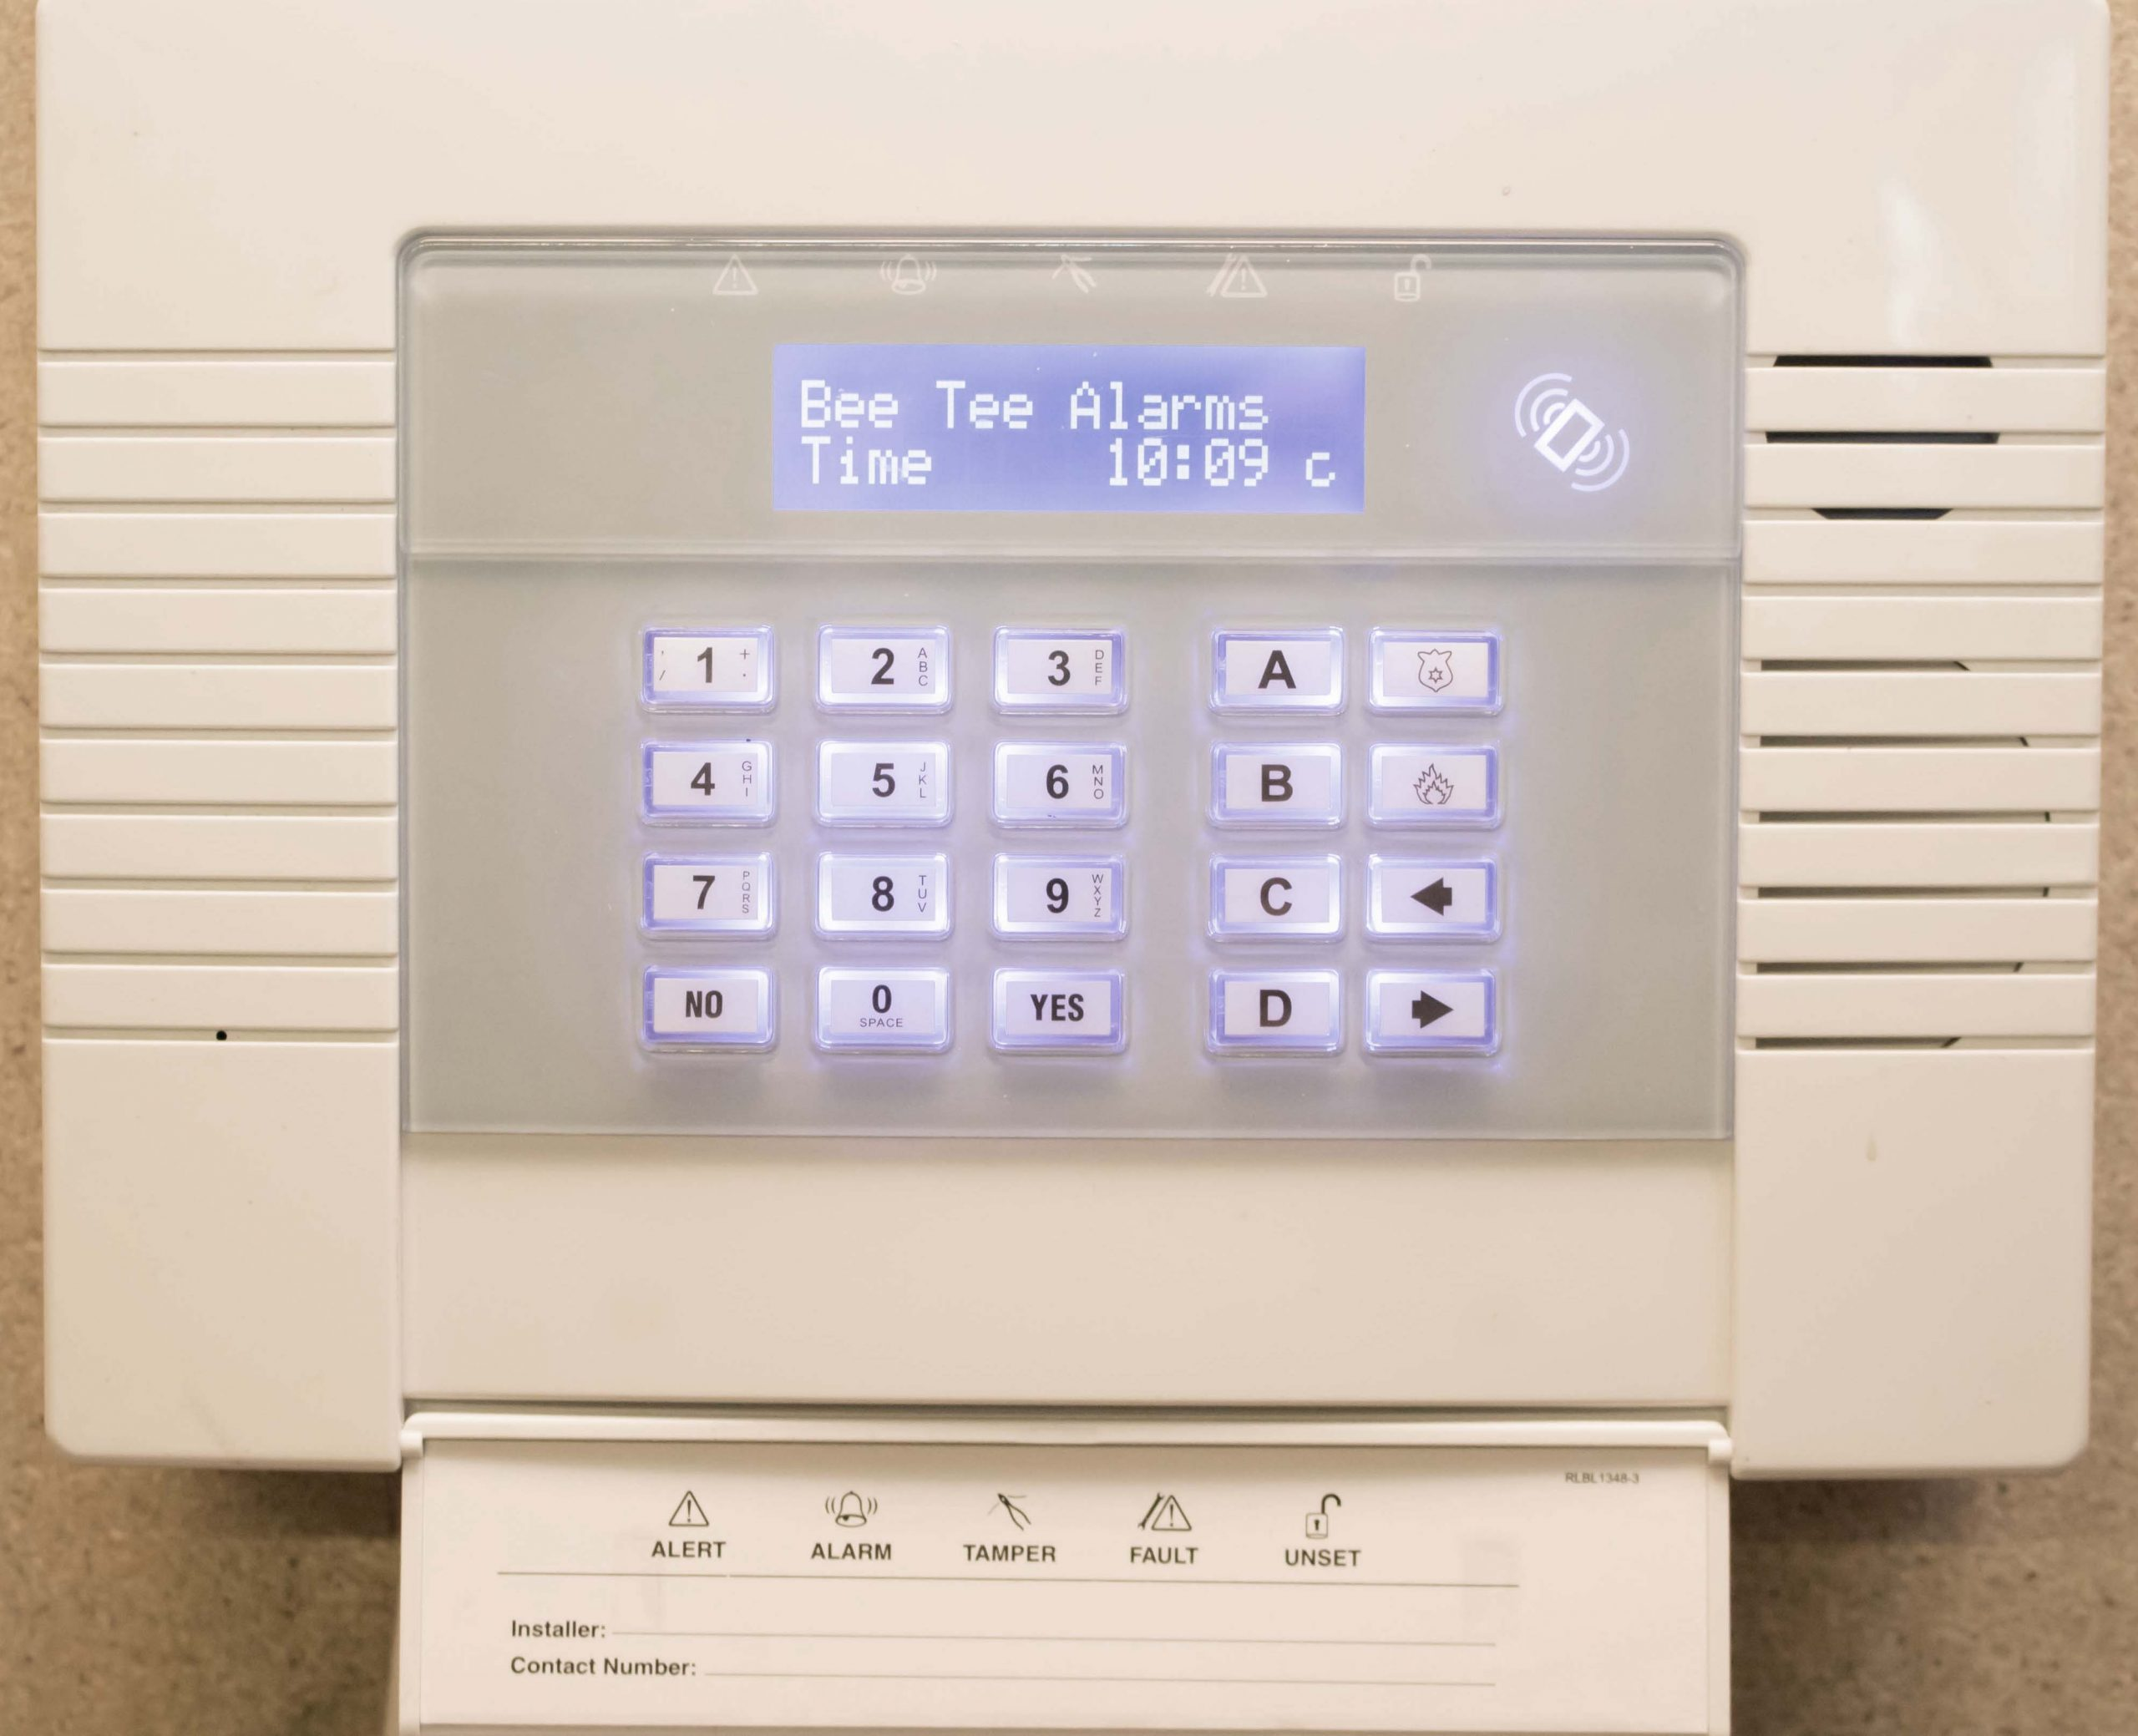 White alarm hub oin ad installed in a home by Bee Tee Alarms.